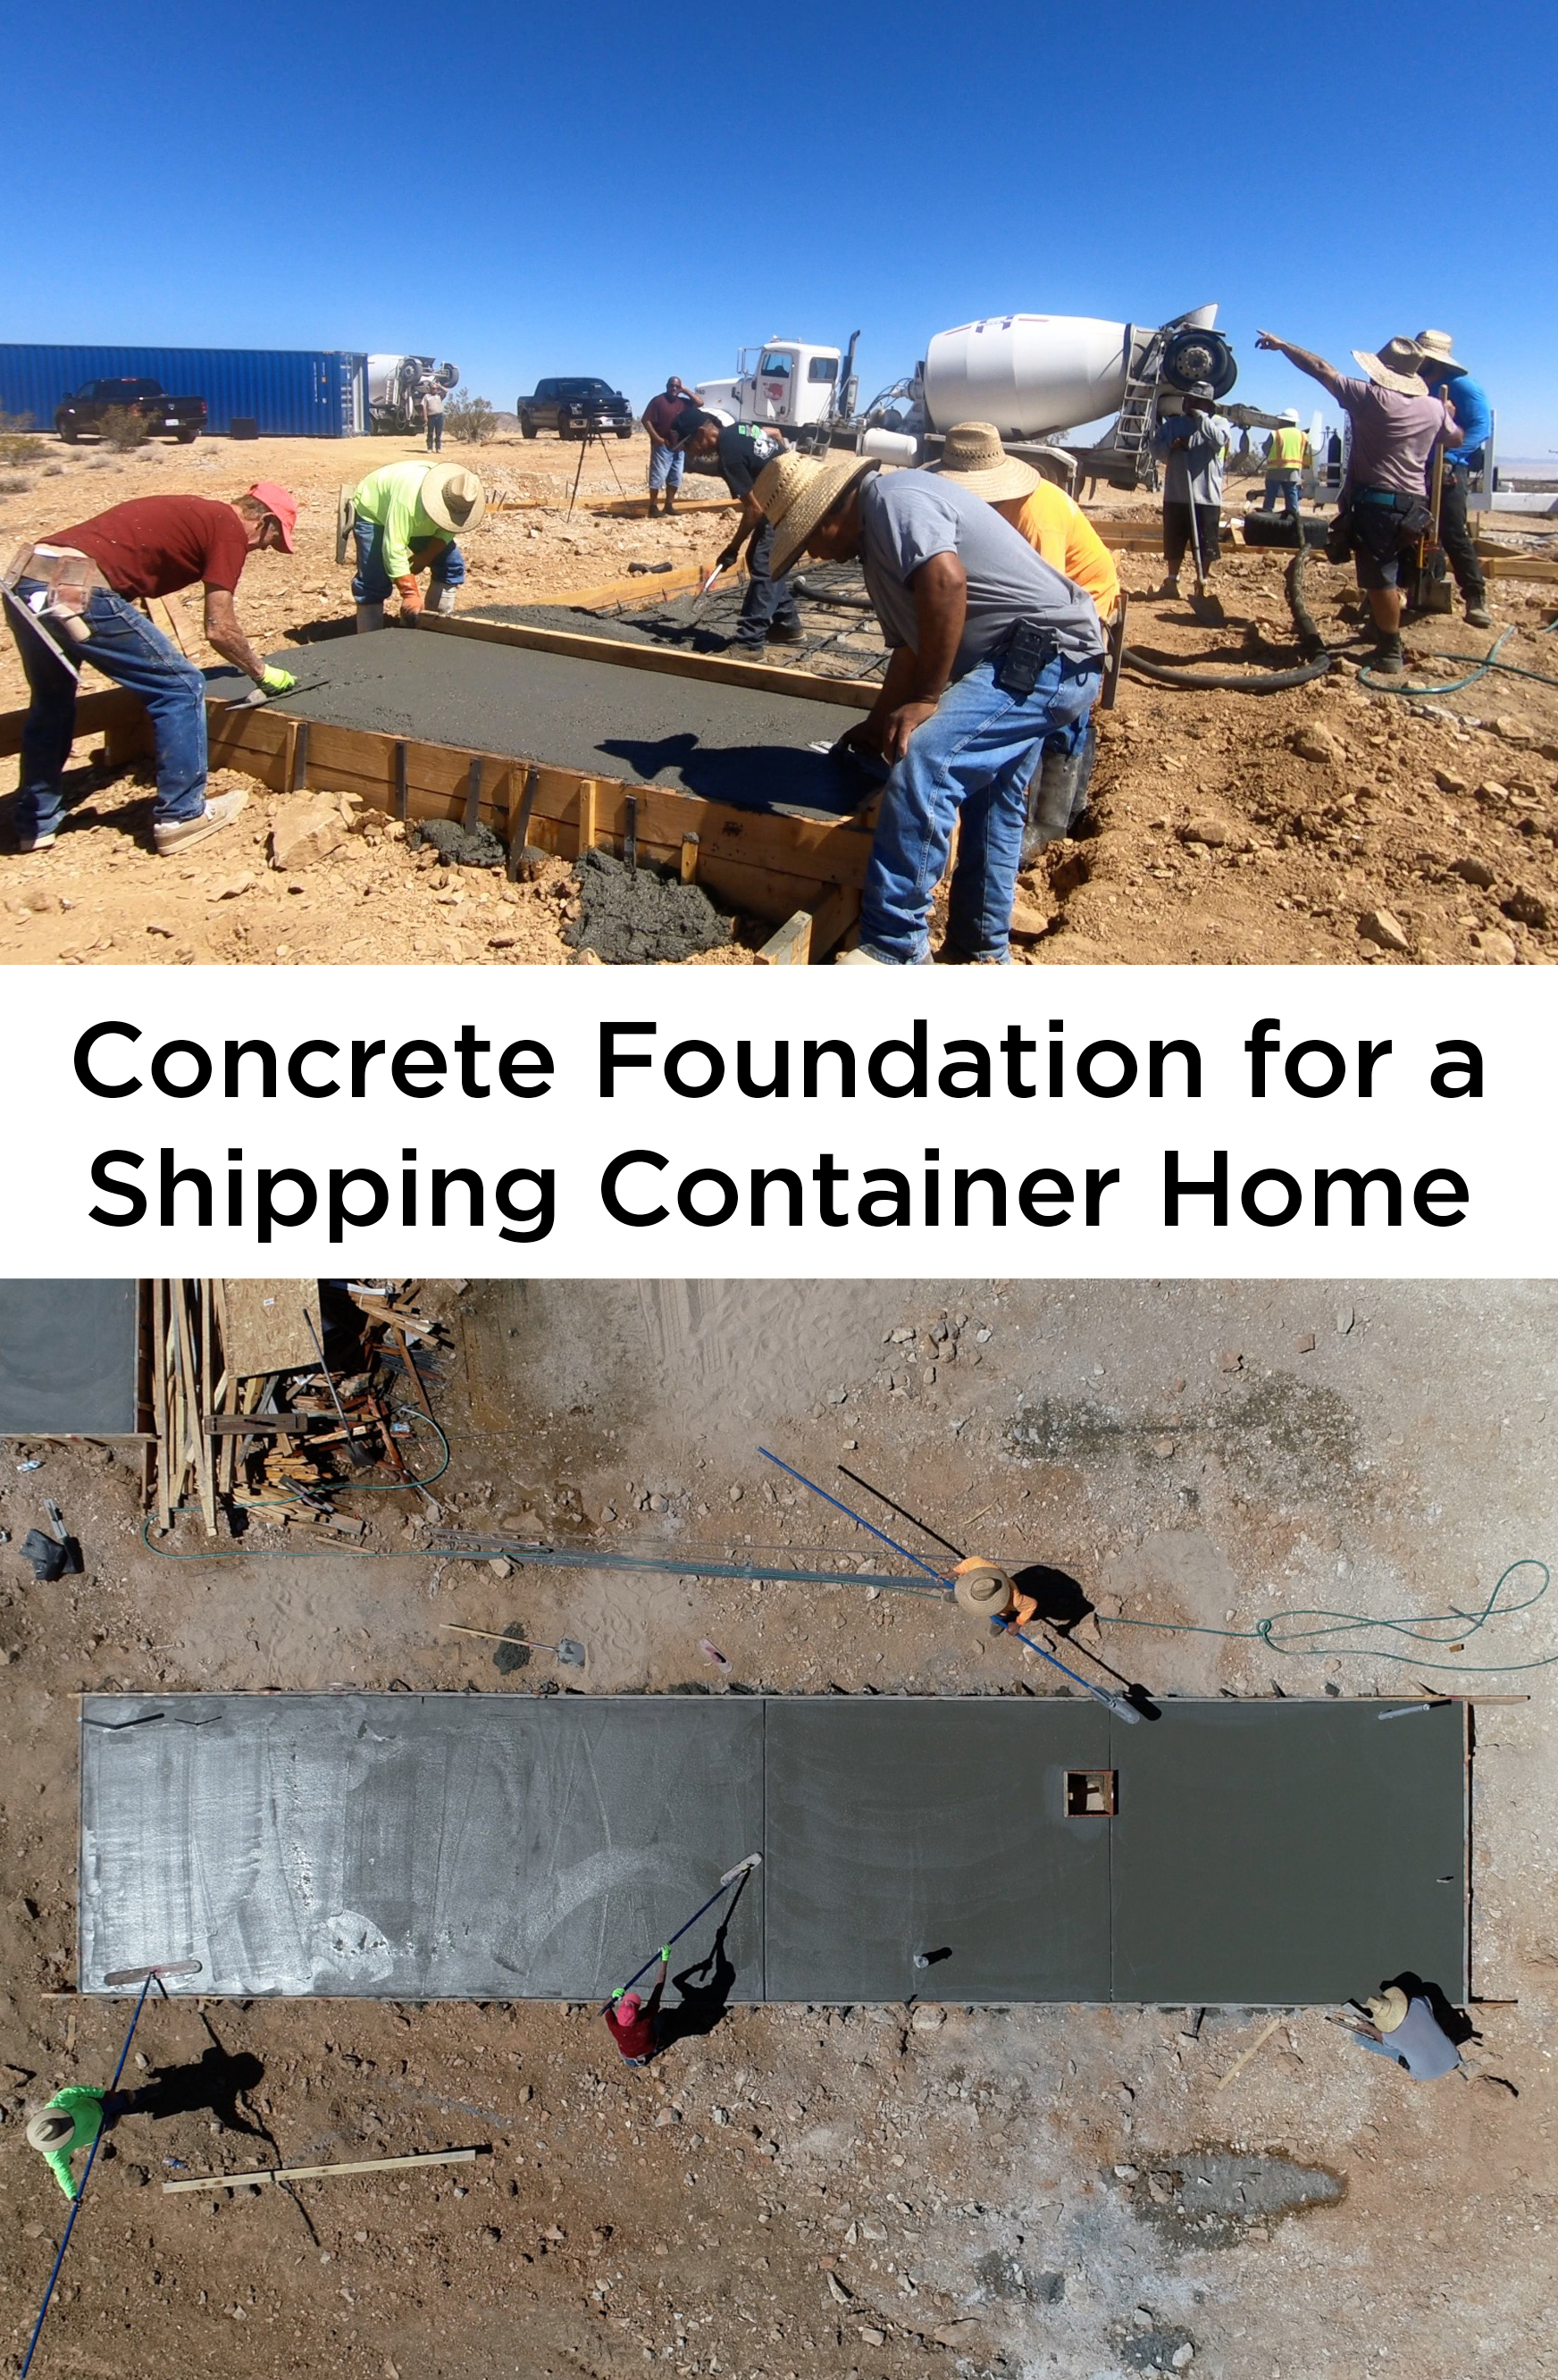 FoundationContainerHome.jpg